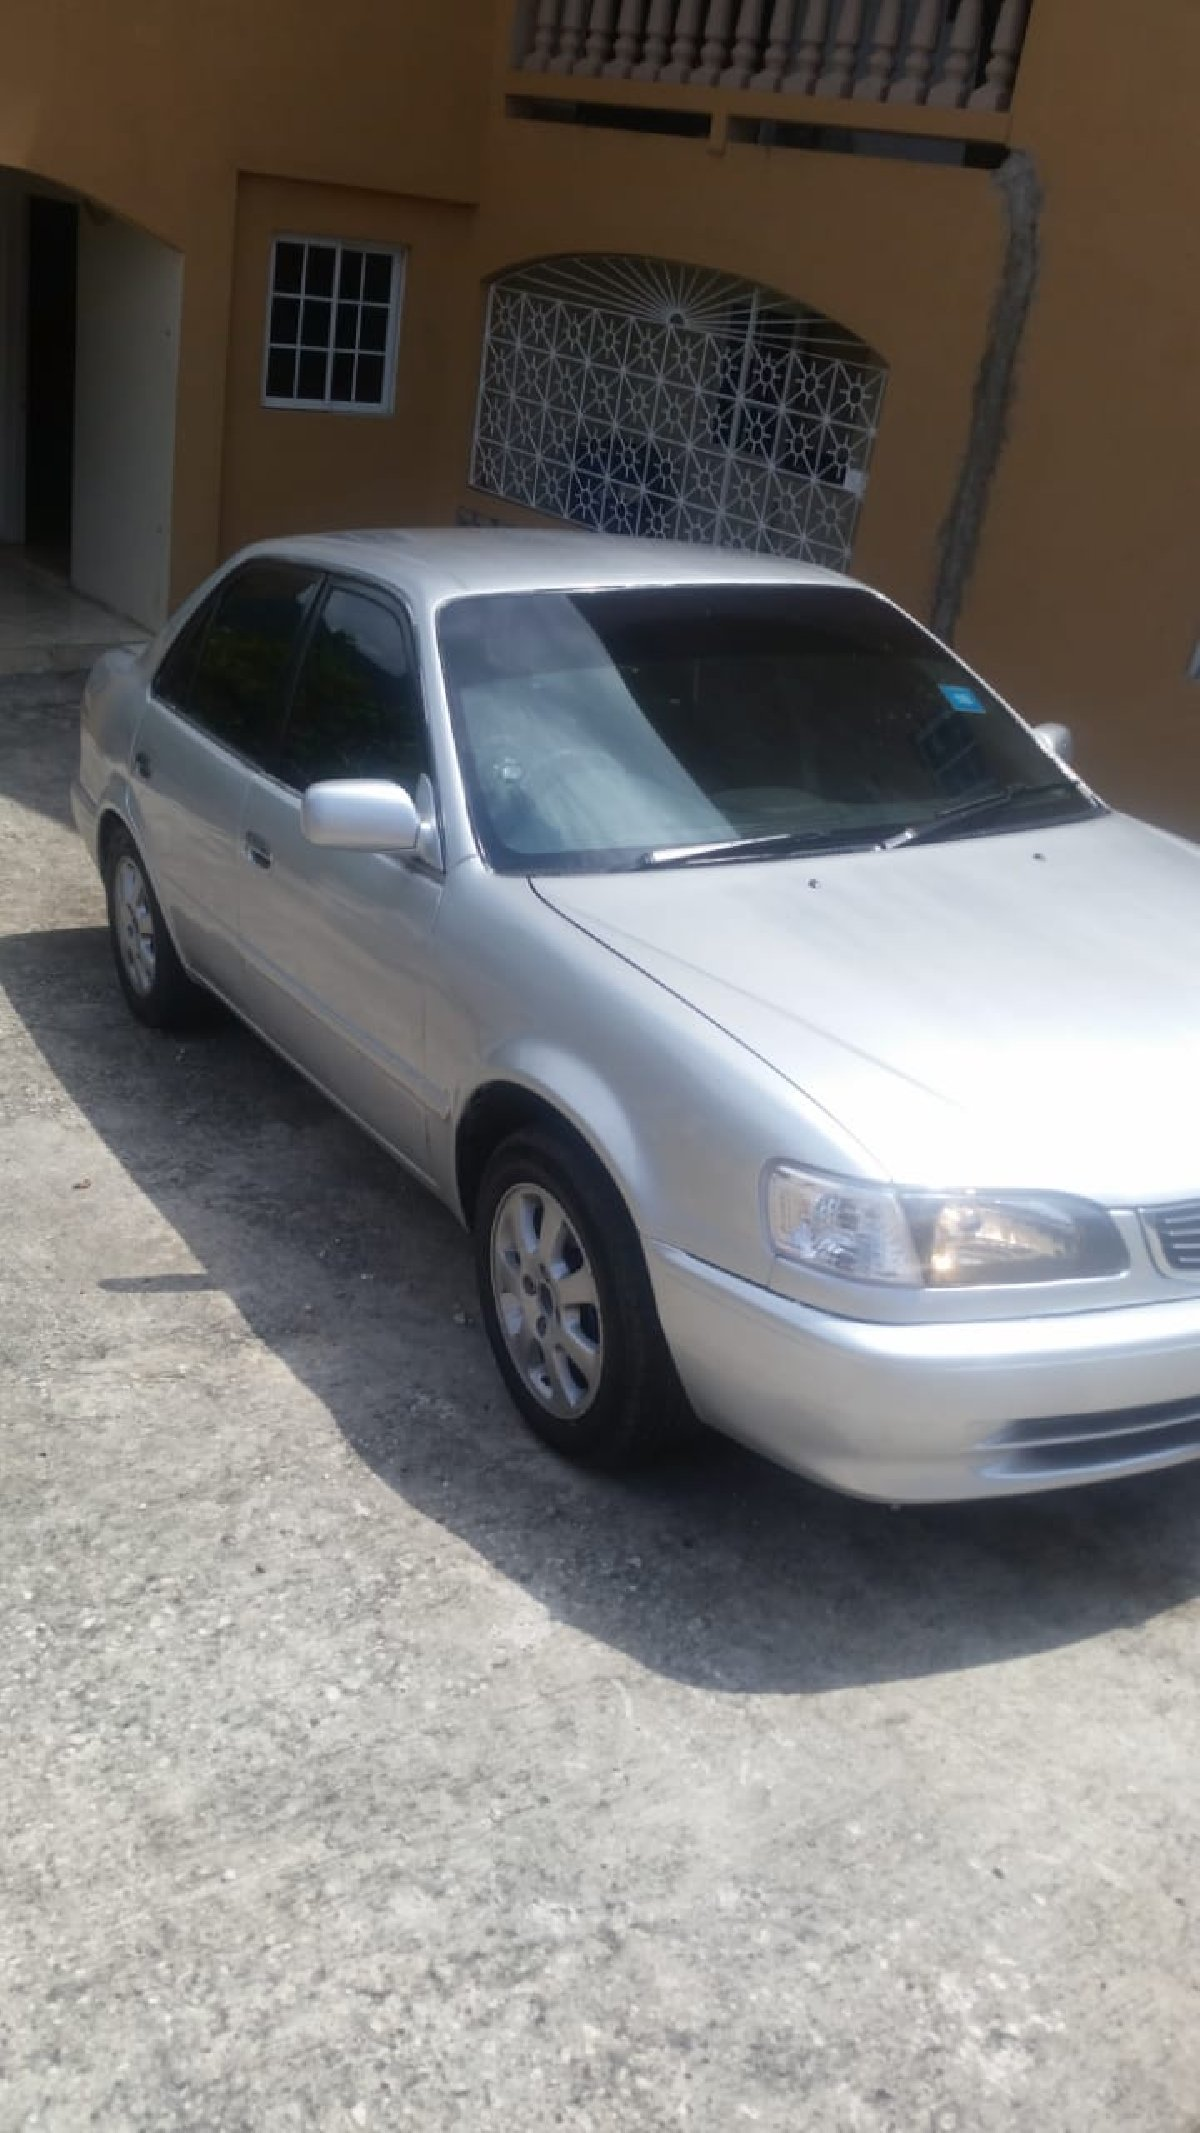 2000 Toyota Corolla AE110 Clean for sale in St James Hanover - Cars